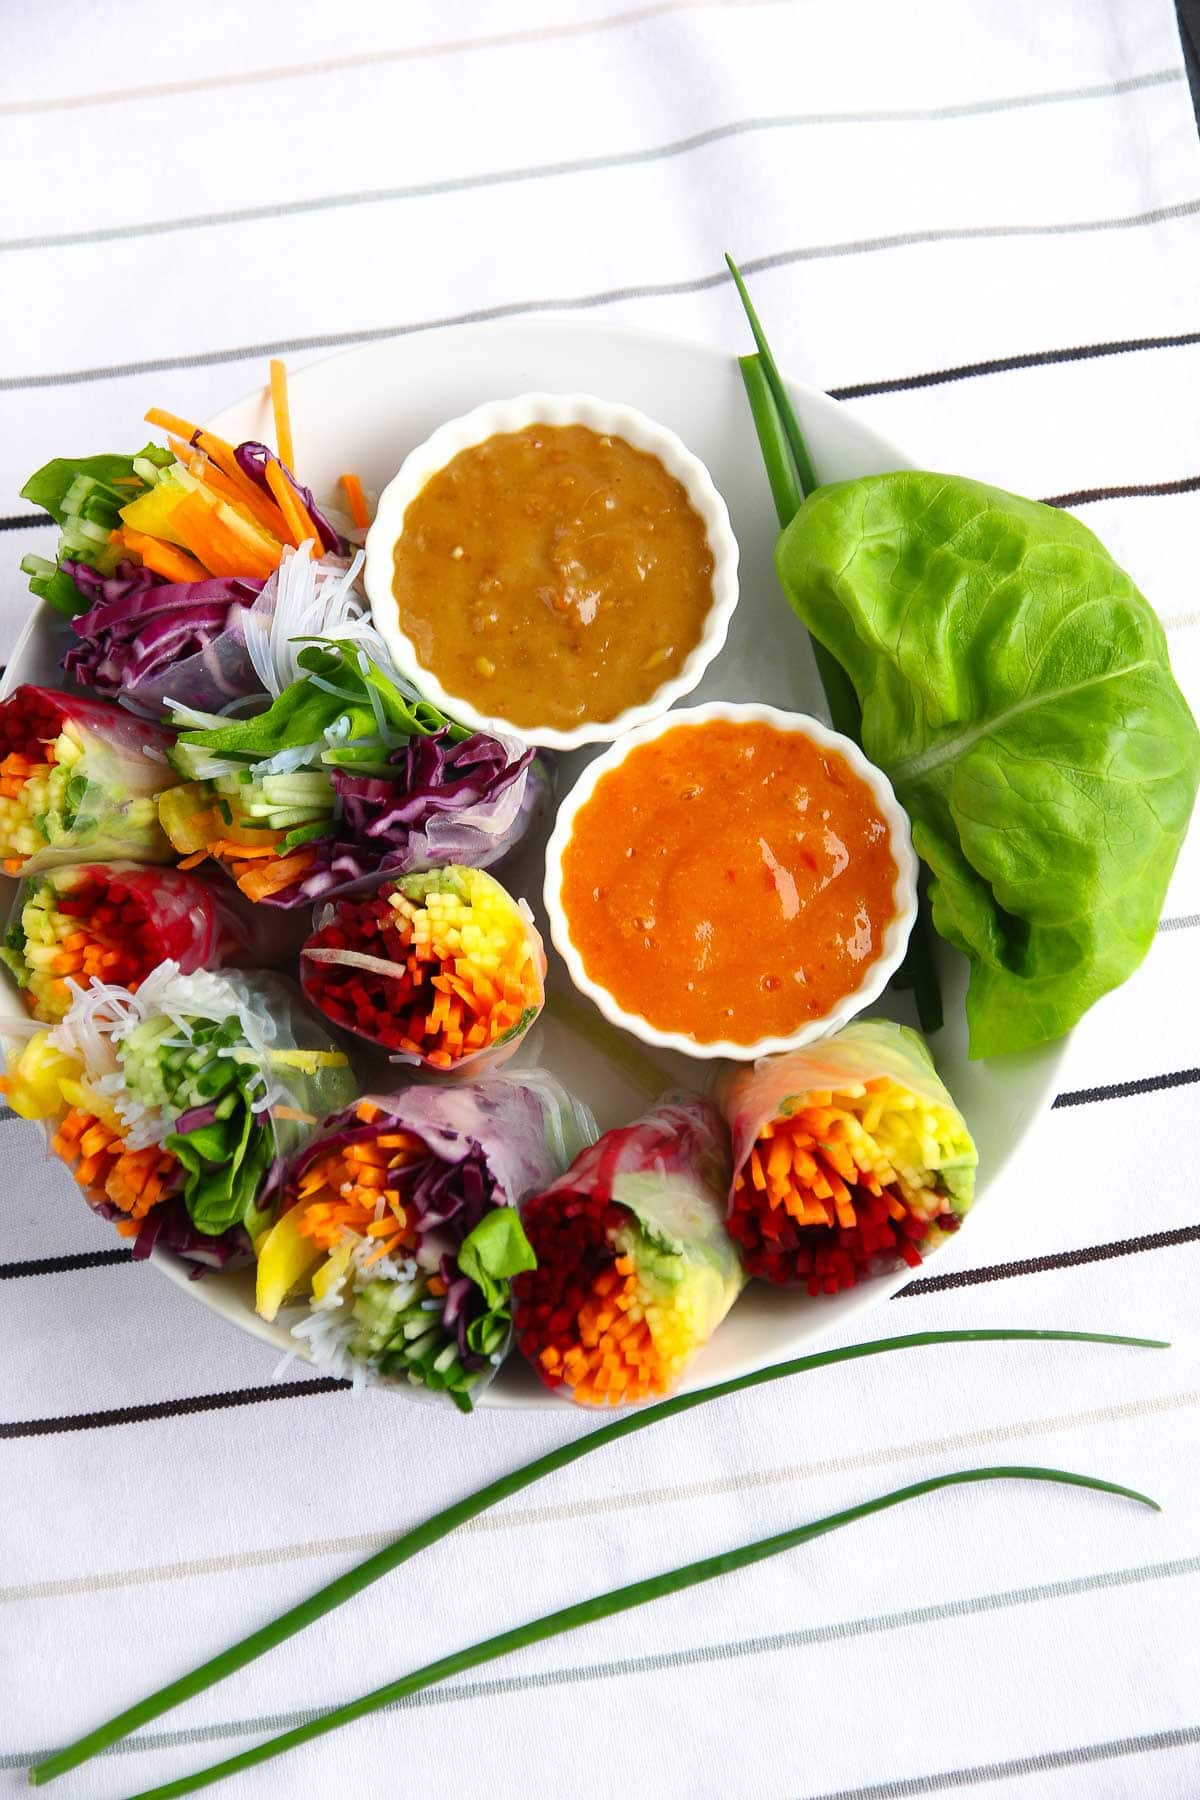 Vegan rainbow spring rolls on a platter with two dipping sauces - mango chili and a peanut ginger.